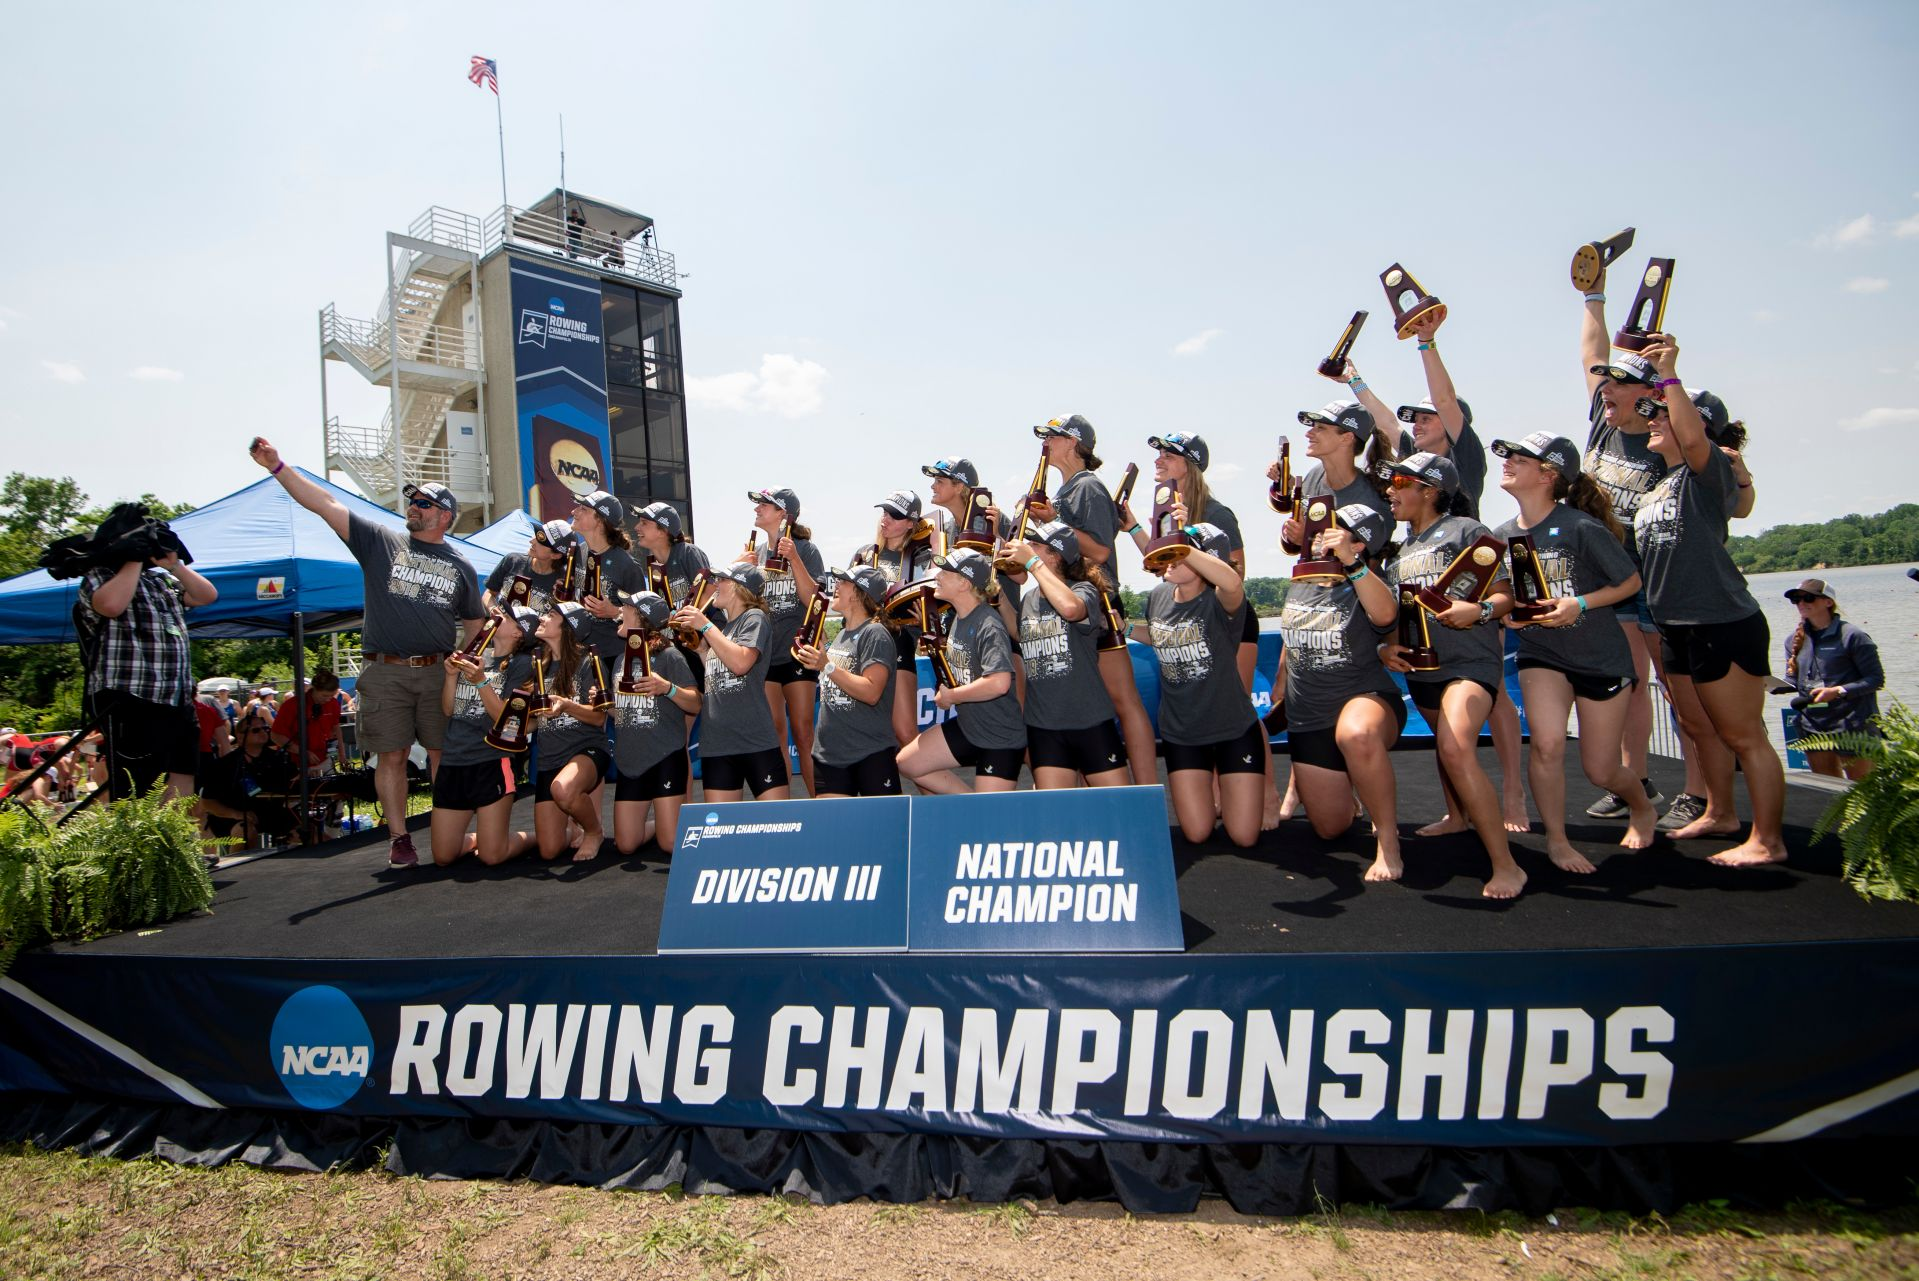 INDIANAPOLIS, IN - JUNE 01: Bates College celebrates winning the Division III Women's Rowing Championship held at the Indianapolis Rowing Center on June 1, 2019 in Indianapolis, Indiana. (Photo by Justin Tafoya/NCAA Photos via Getty Images)